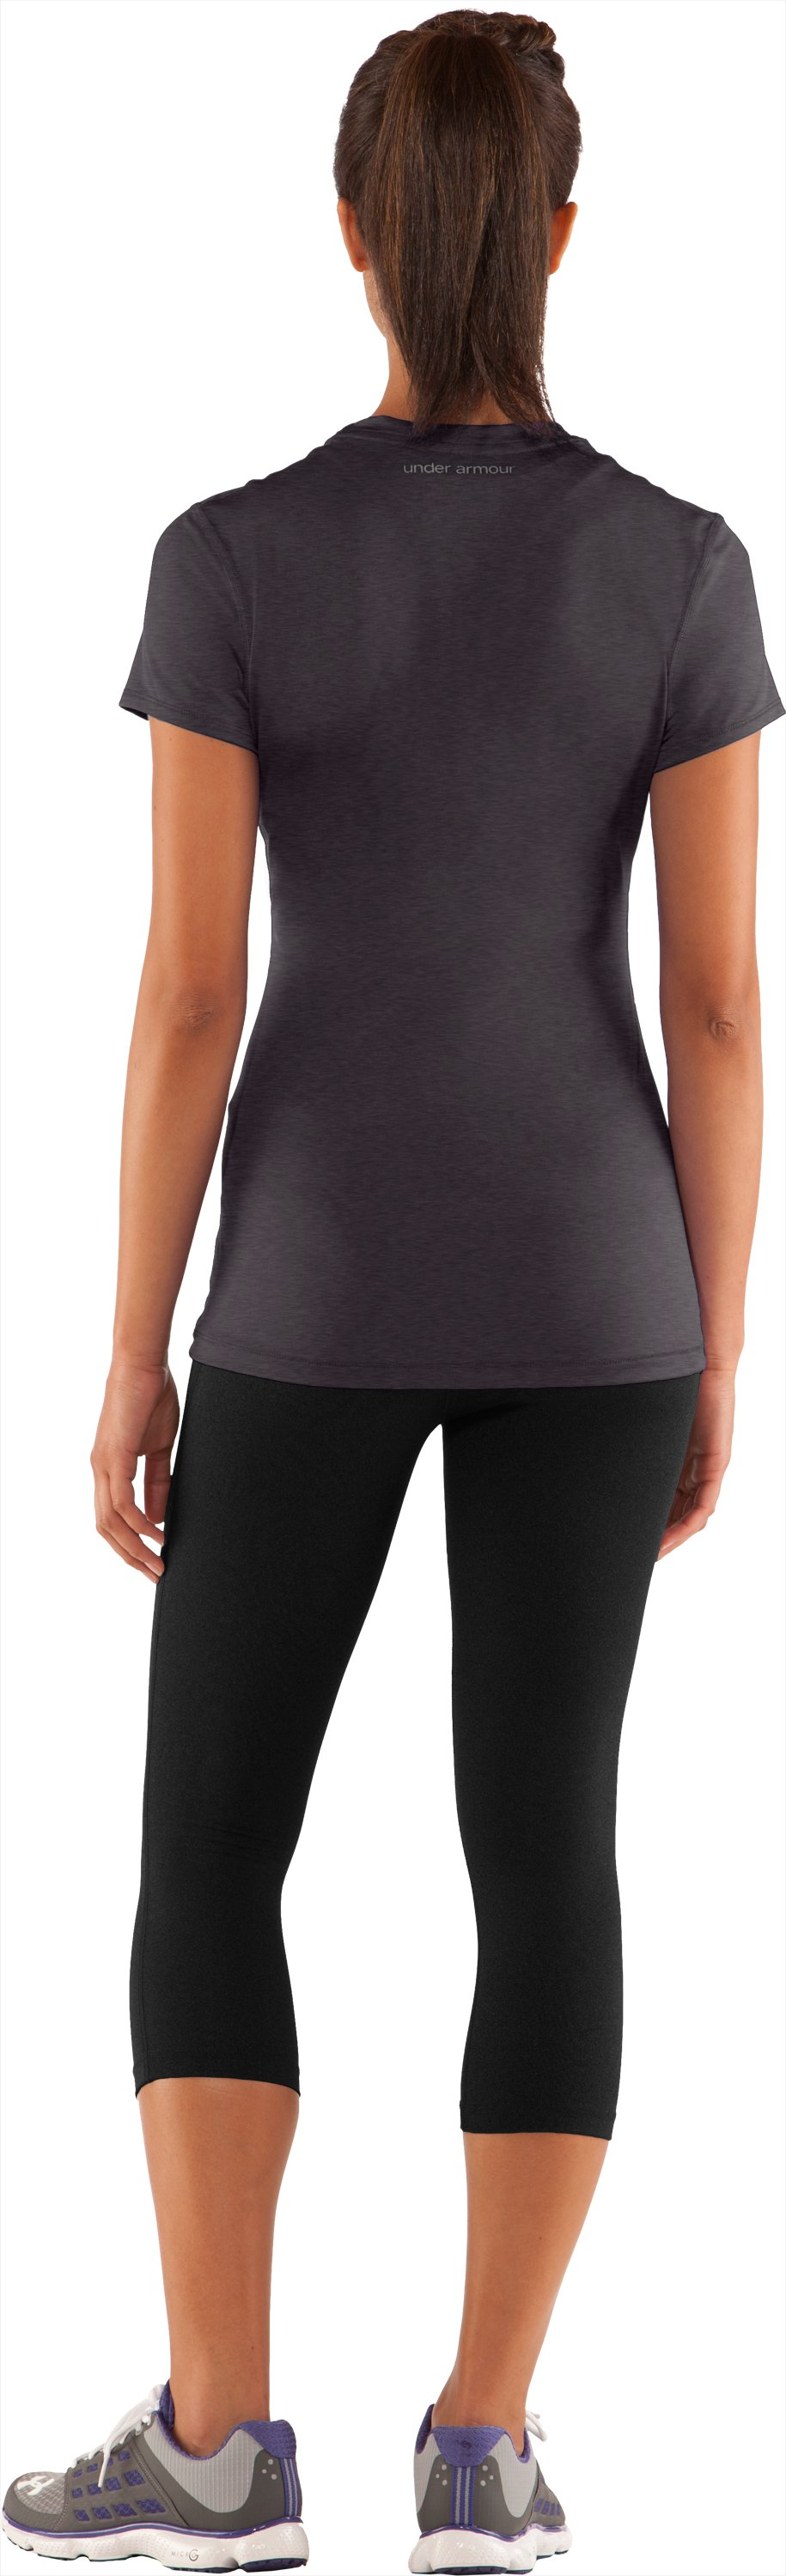 Women's HeatGear® Sonic Short Sleeve, Carbon Heather, Back